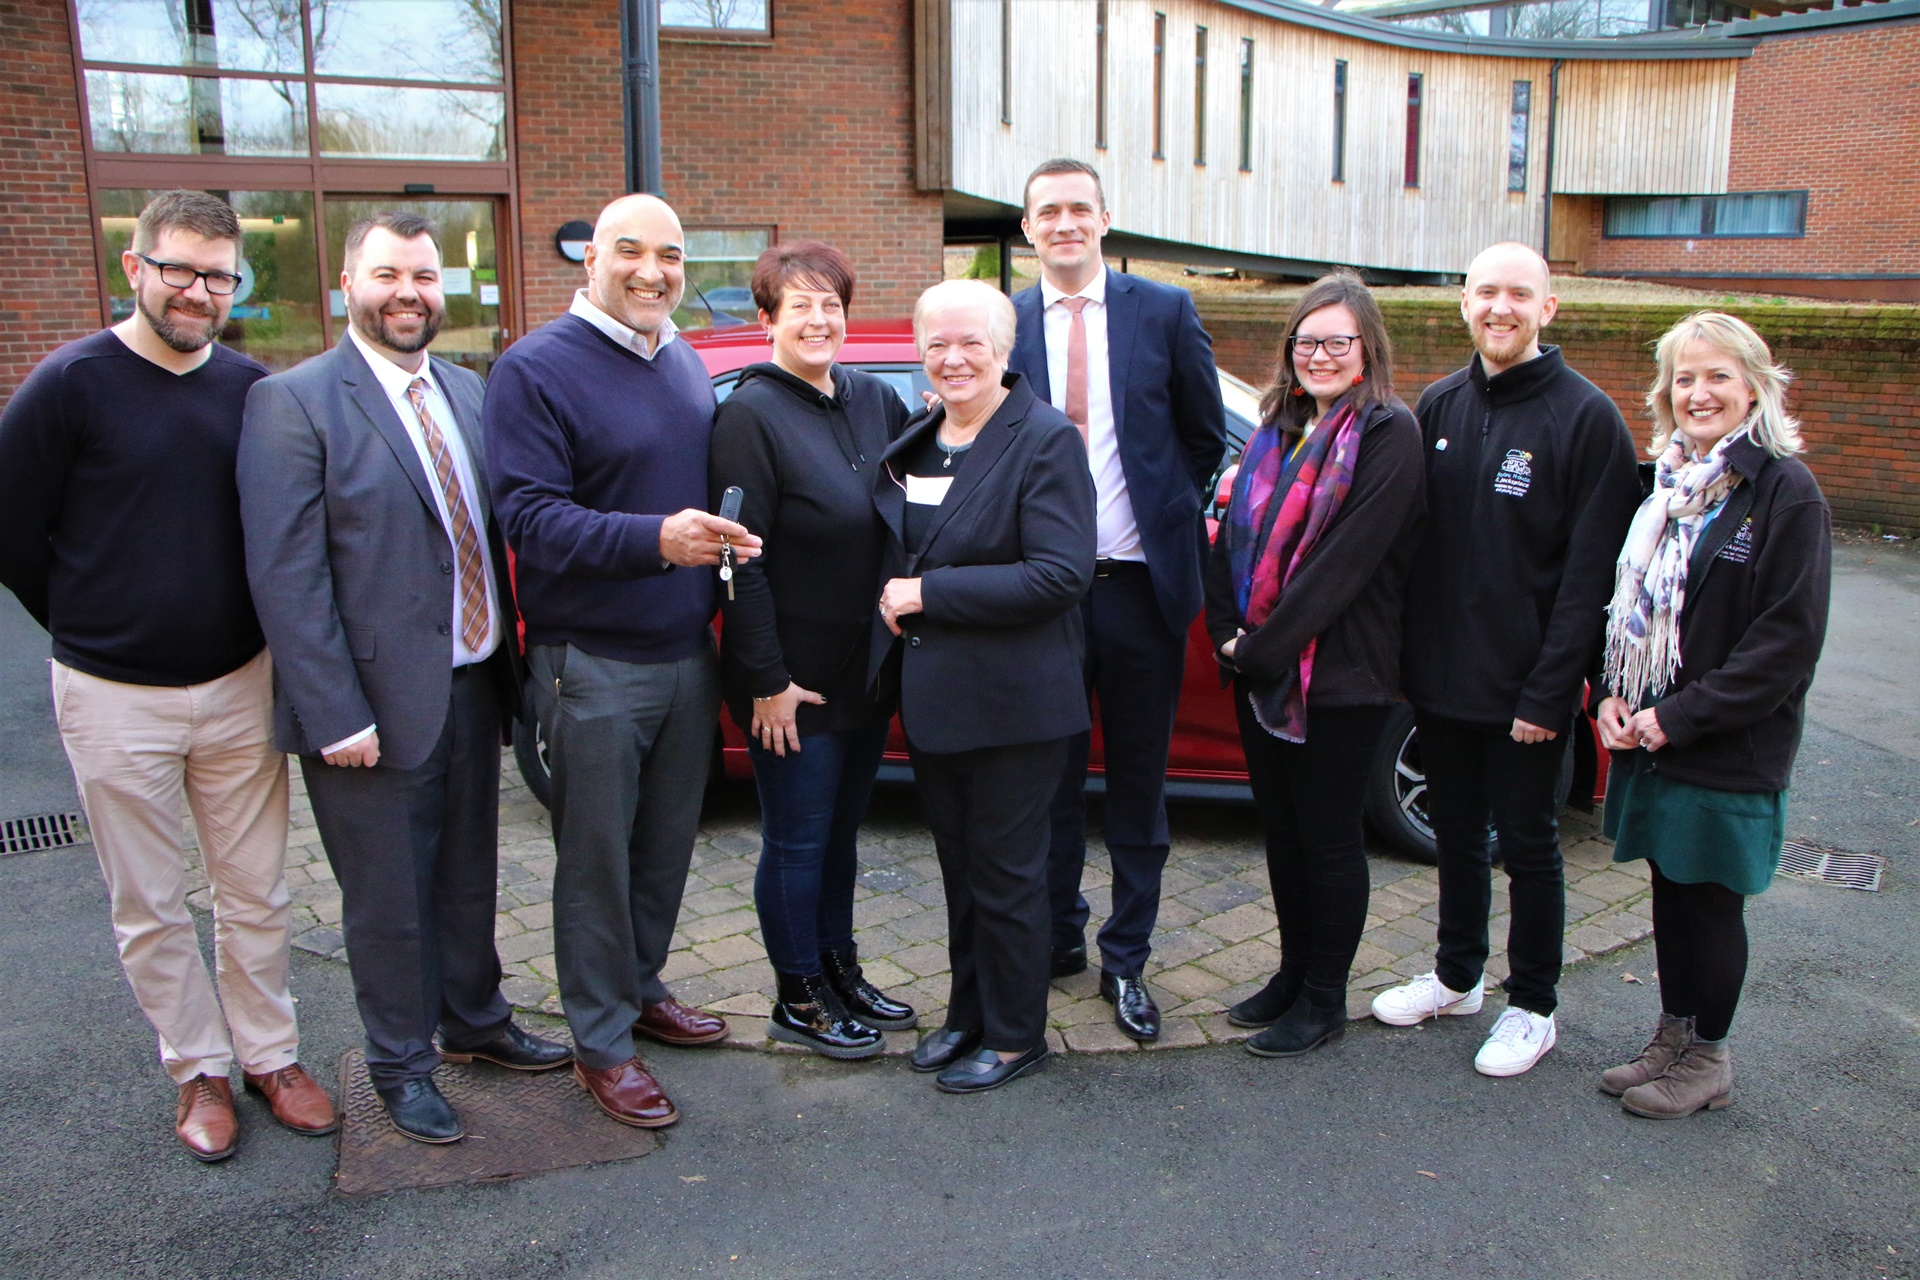 Winner of charity lottery drives away in brand new car